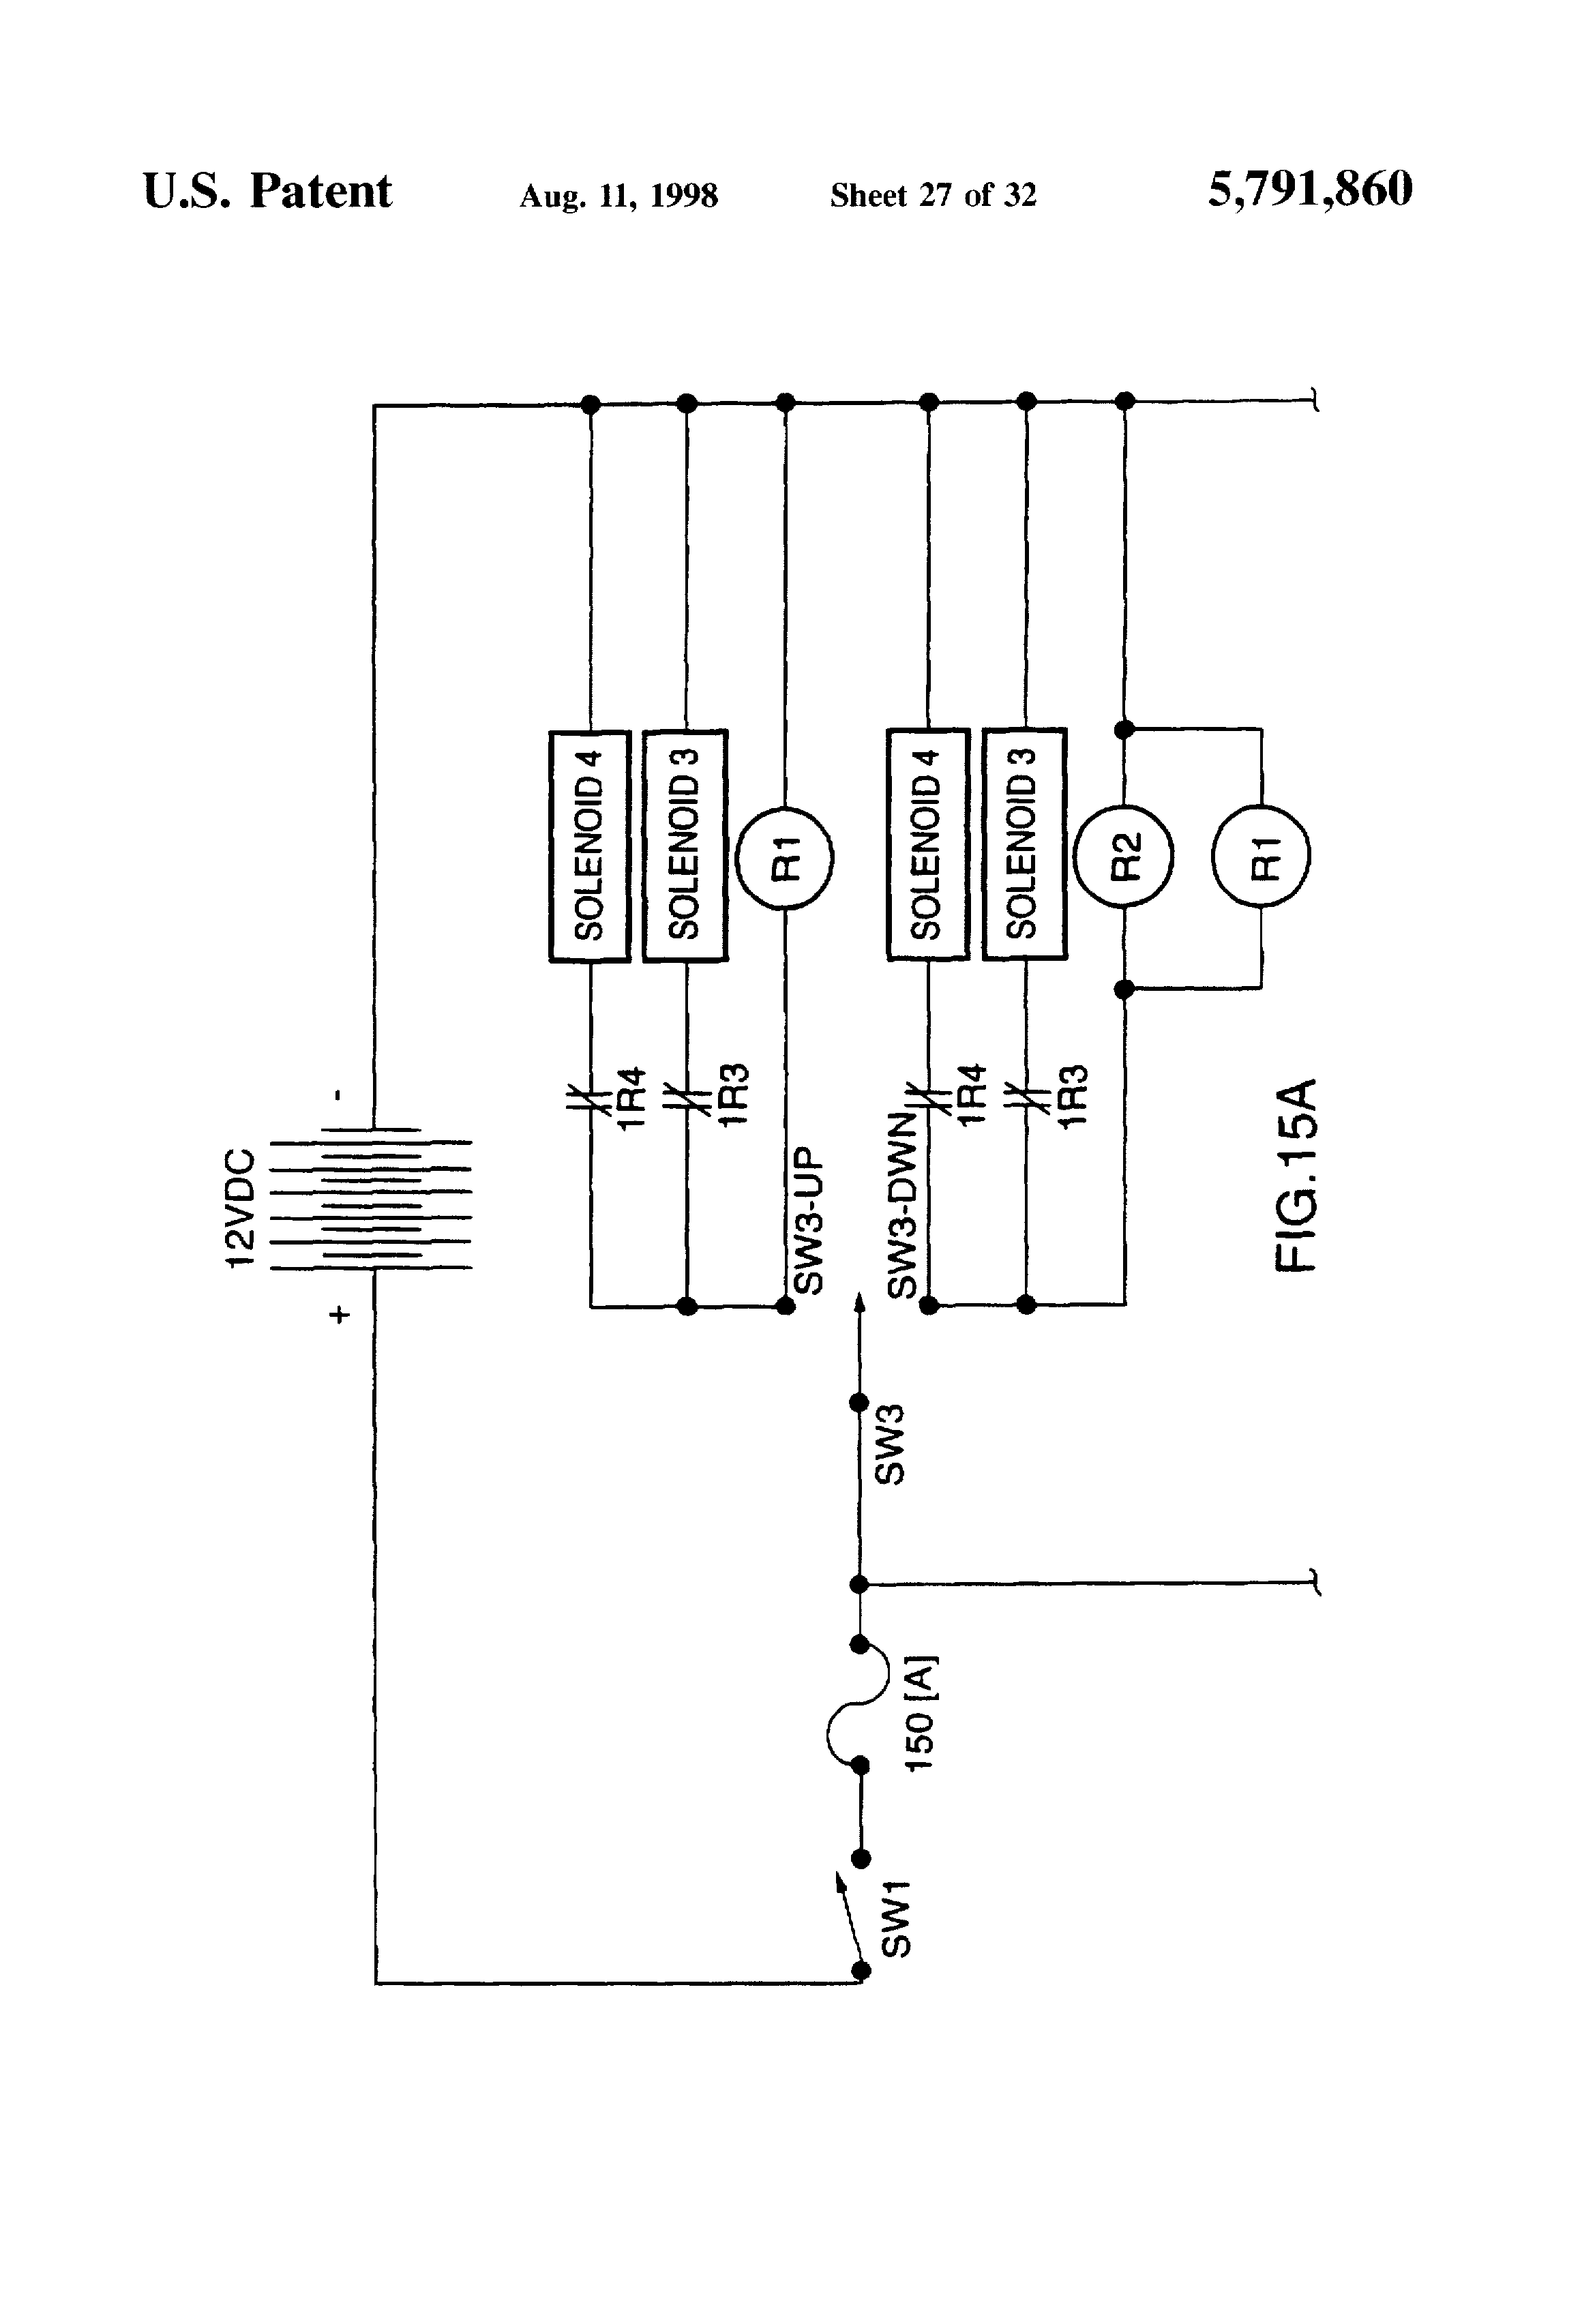 Maxon Valve Wiring Diagram Lift Schematic All About 280253 Patent Us Hydraulic Platform For A Truck Tailgate Drawing